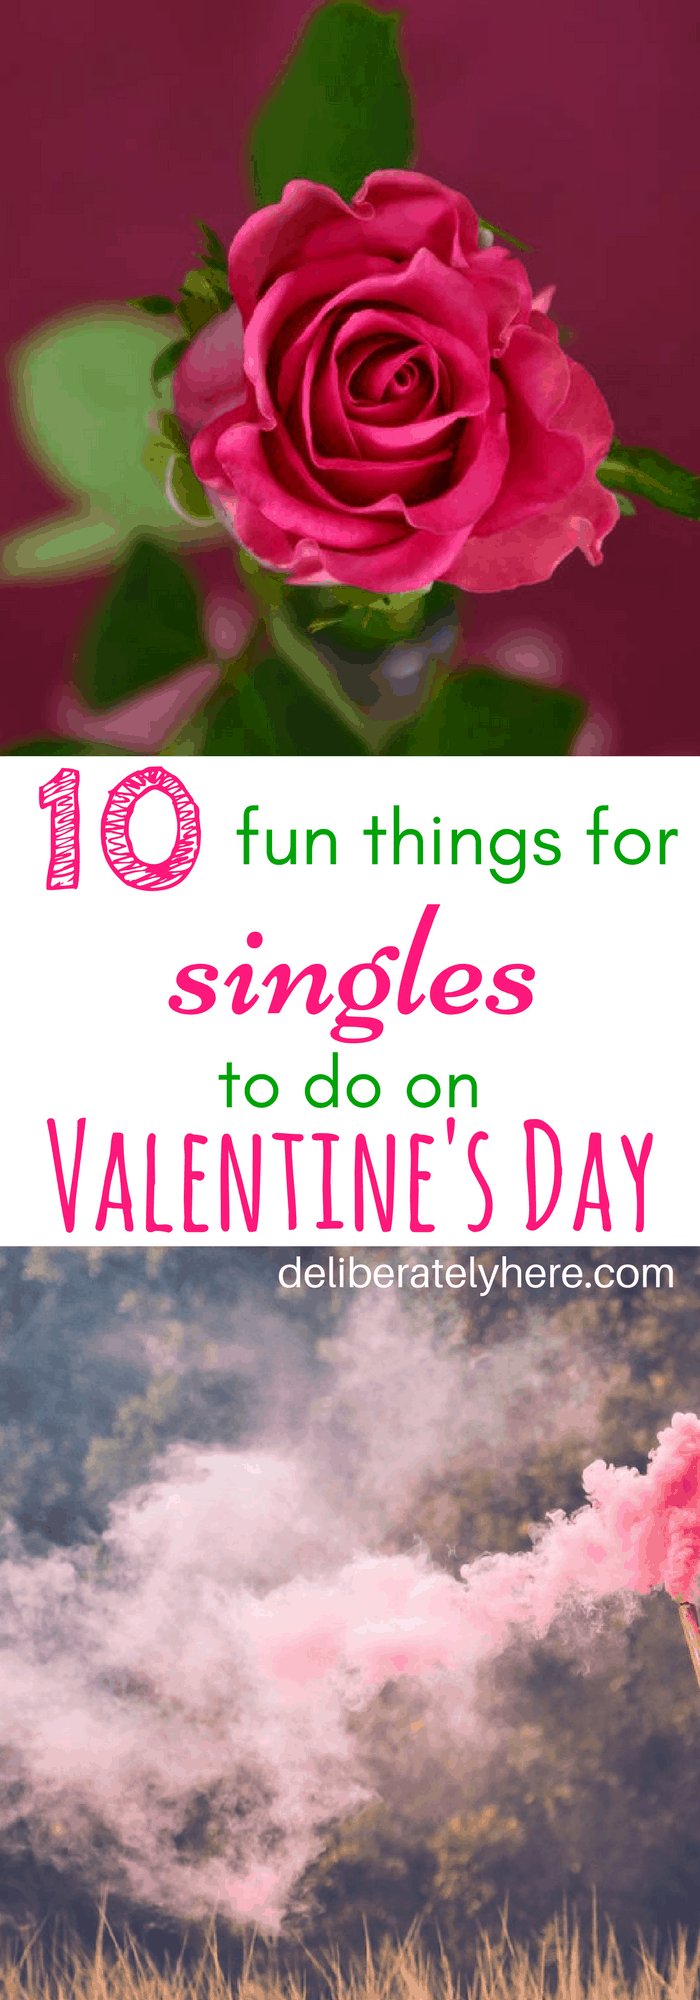 10 Fun Things for Singles to do on Valentine's Day